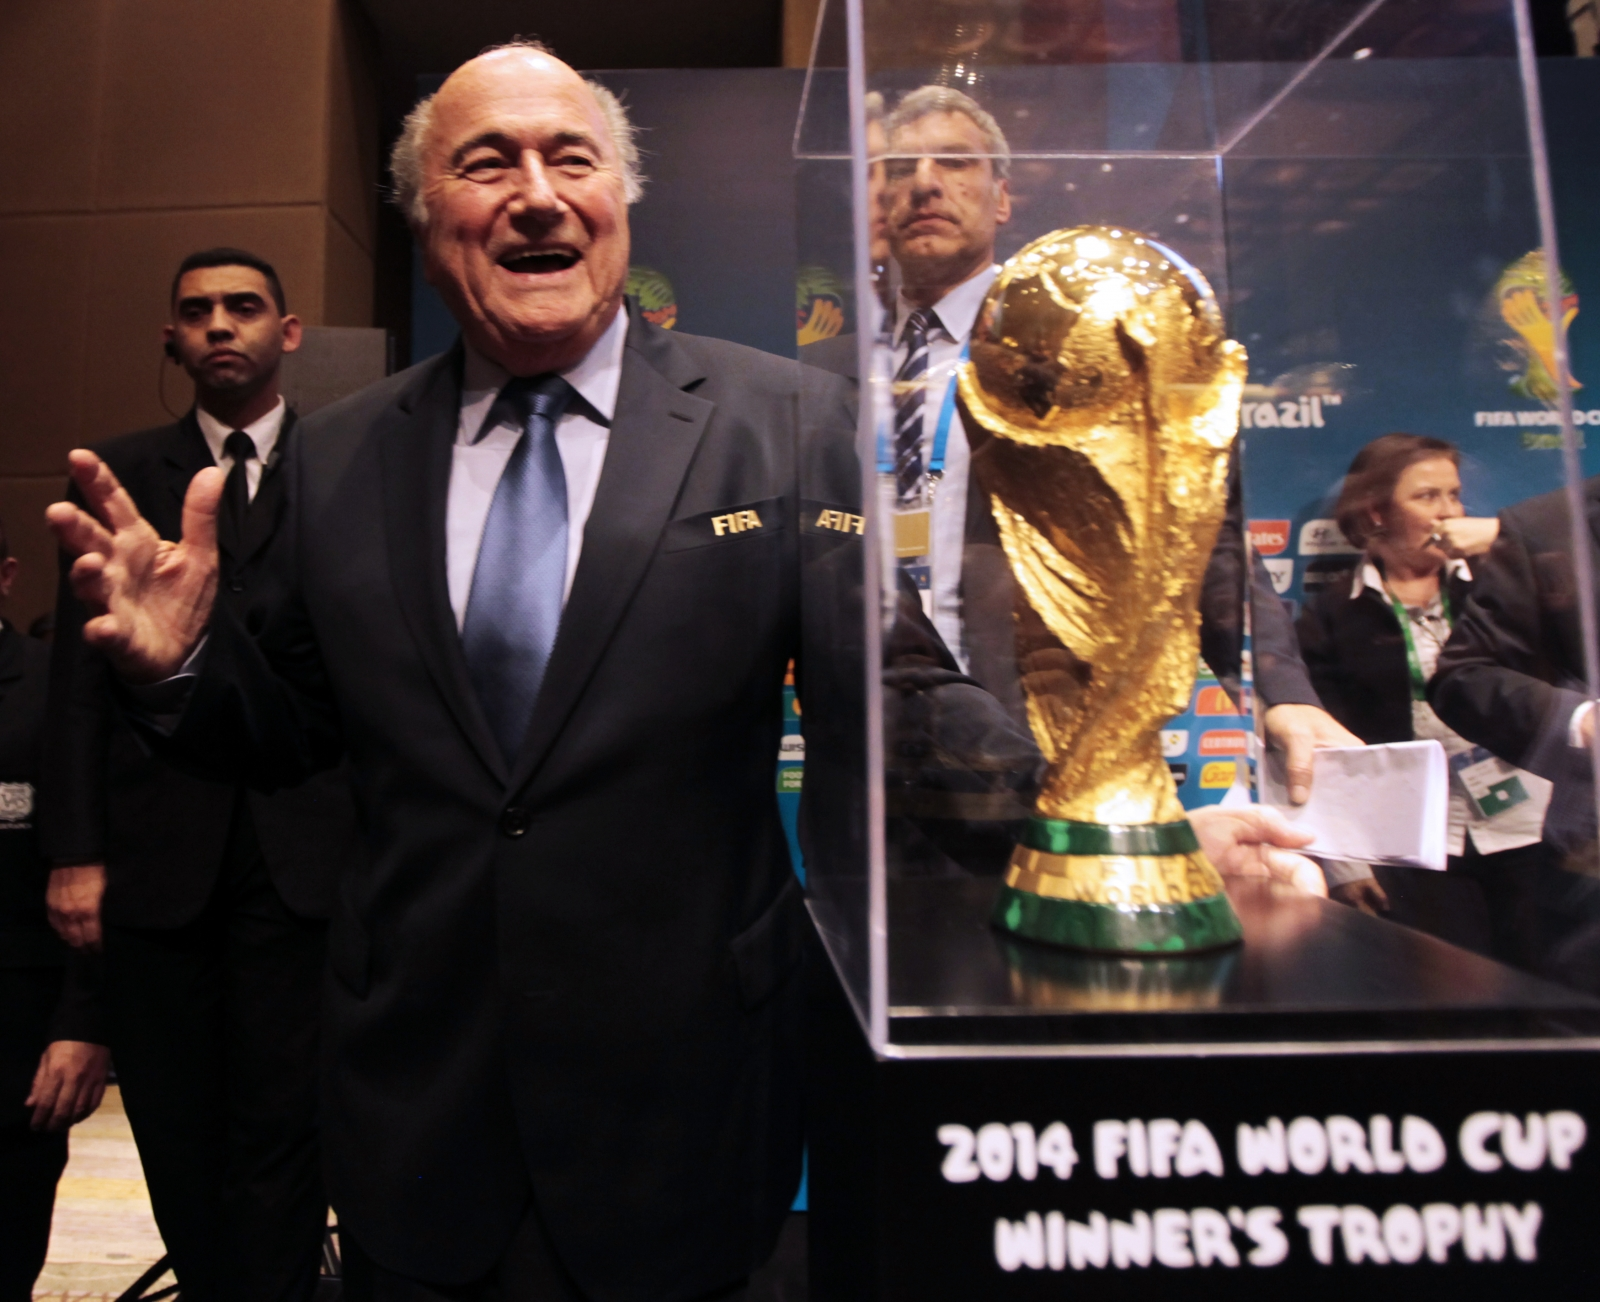 Sepp Blatter and the World Cup trophy